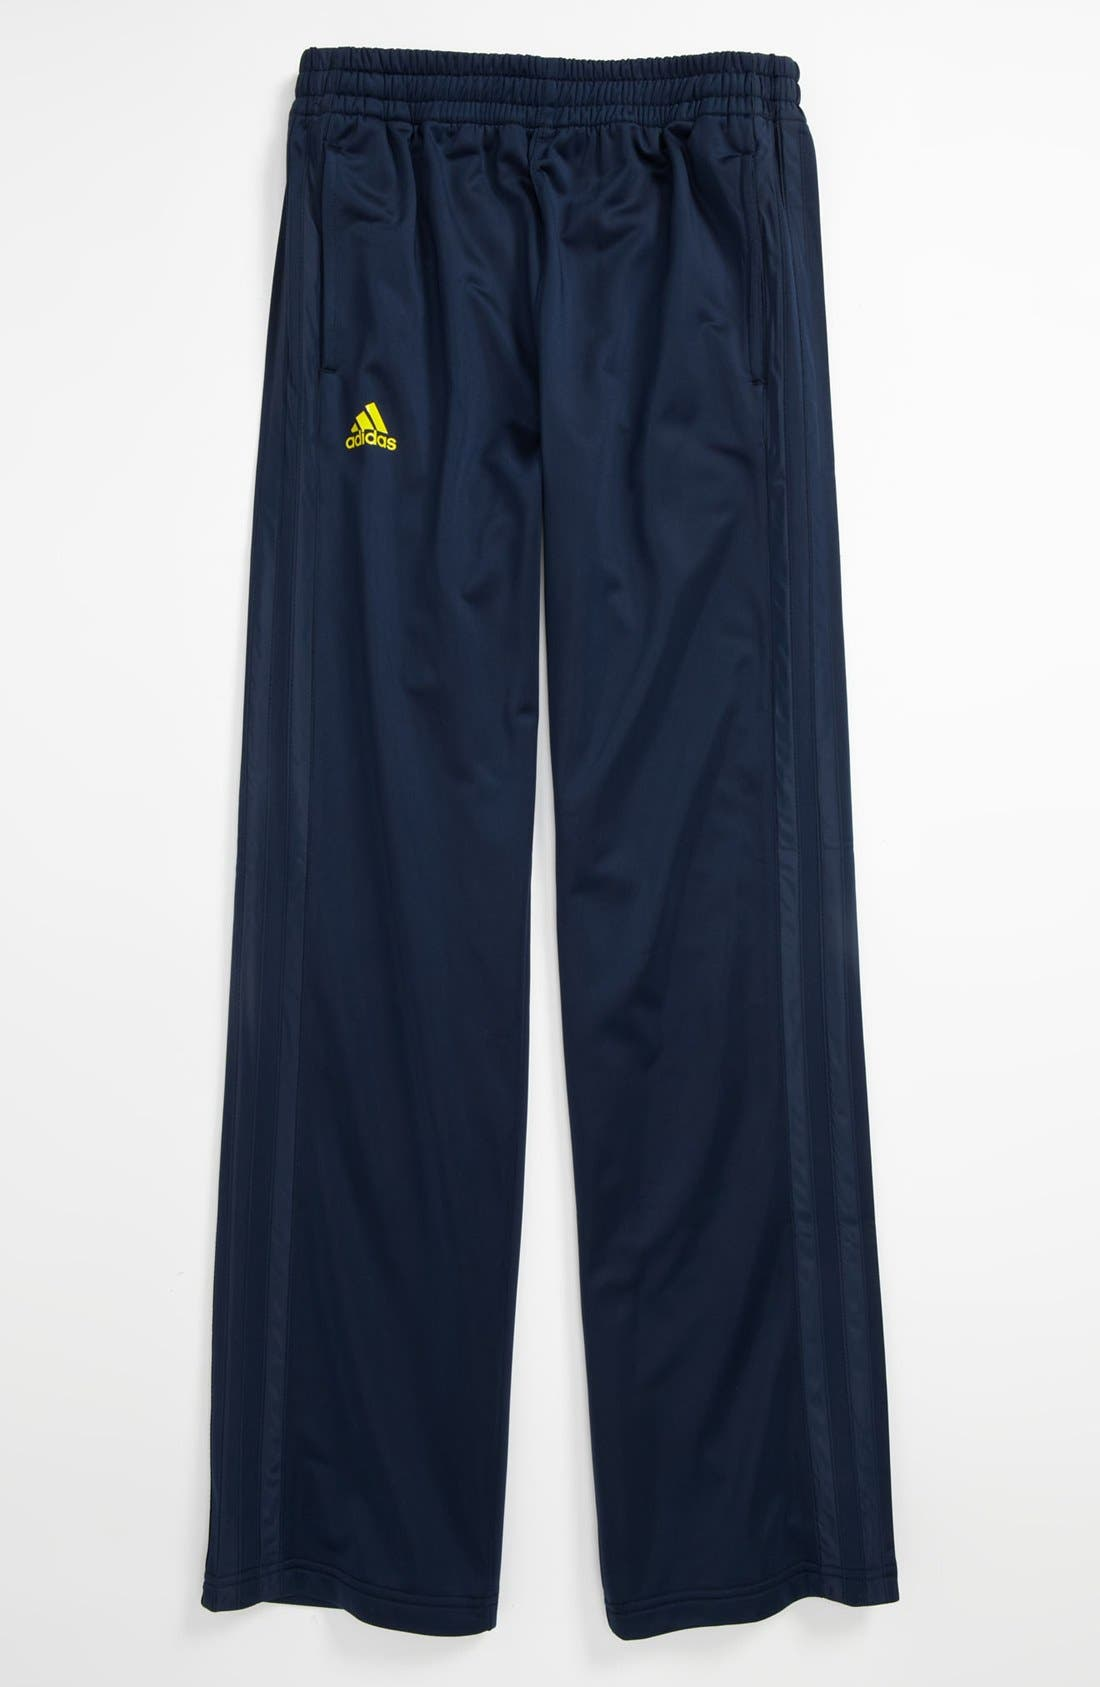 Main Image - adidas 'Fat Stripes' Basketball Pants (Big Boys)